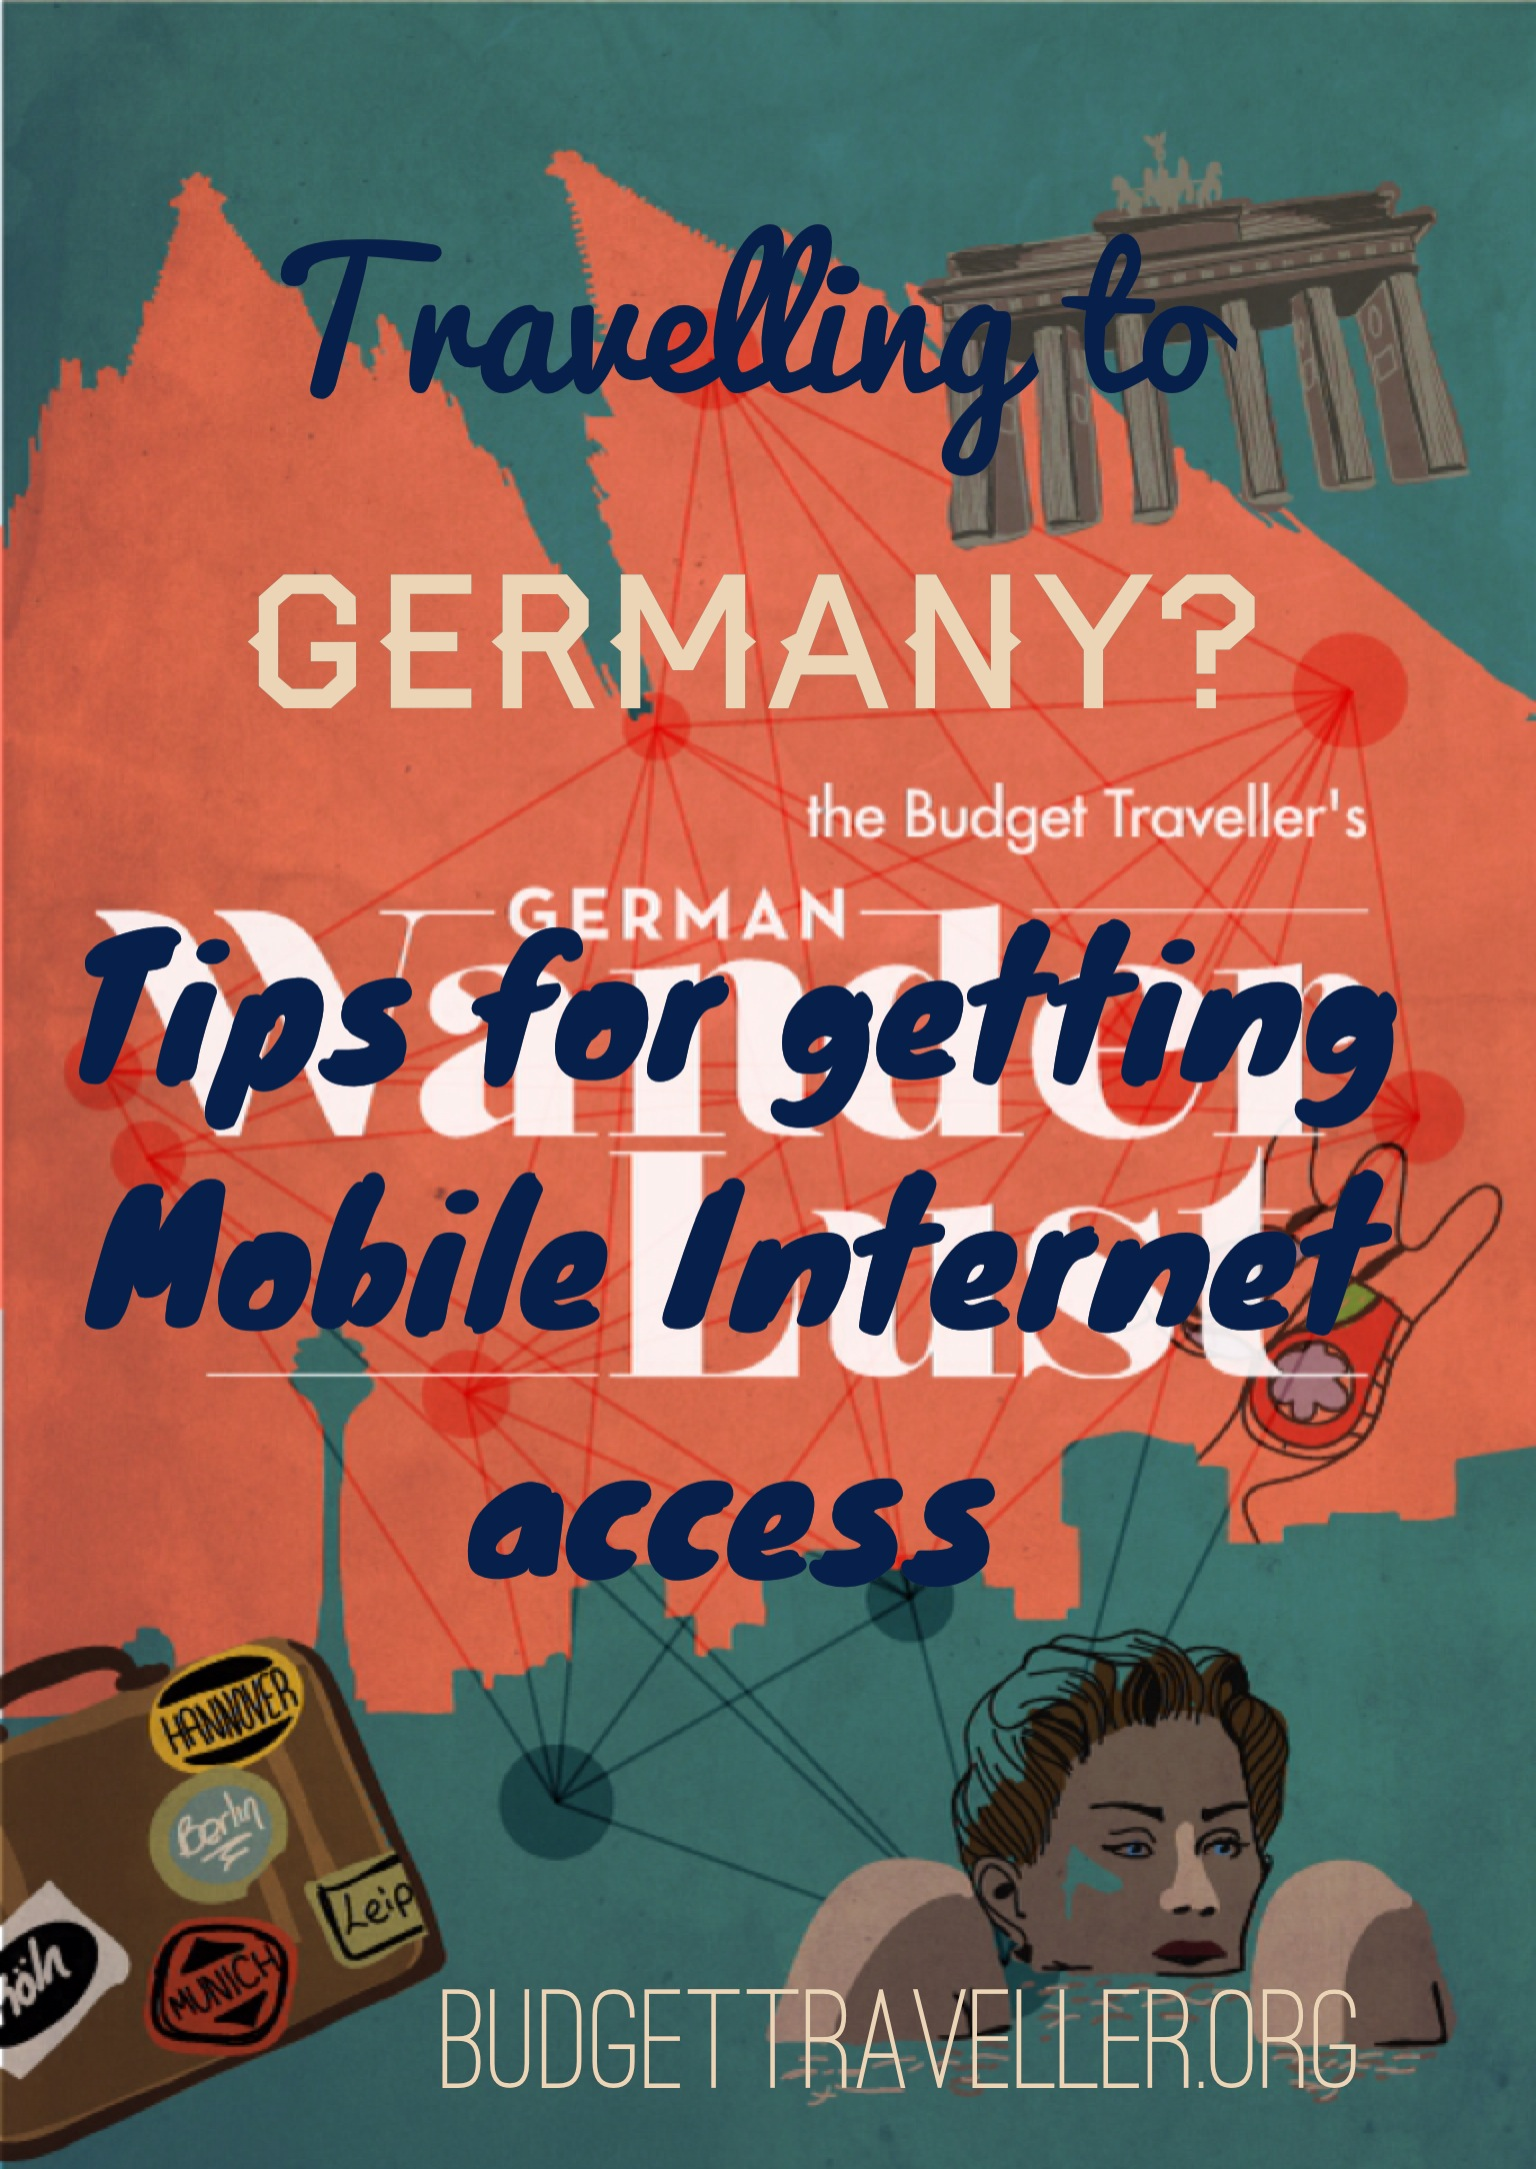 T Mobile Shop Berlin Travelling To Germany Tips For Getting Mobile Internet Access